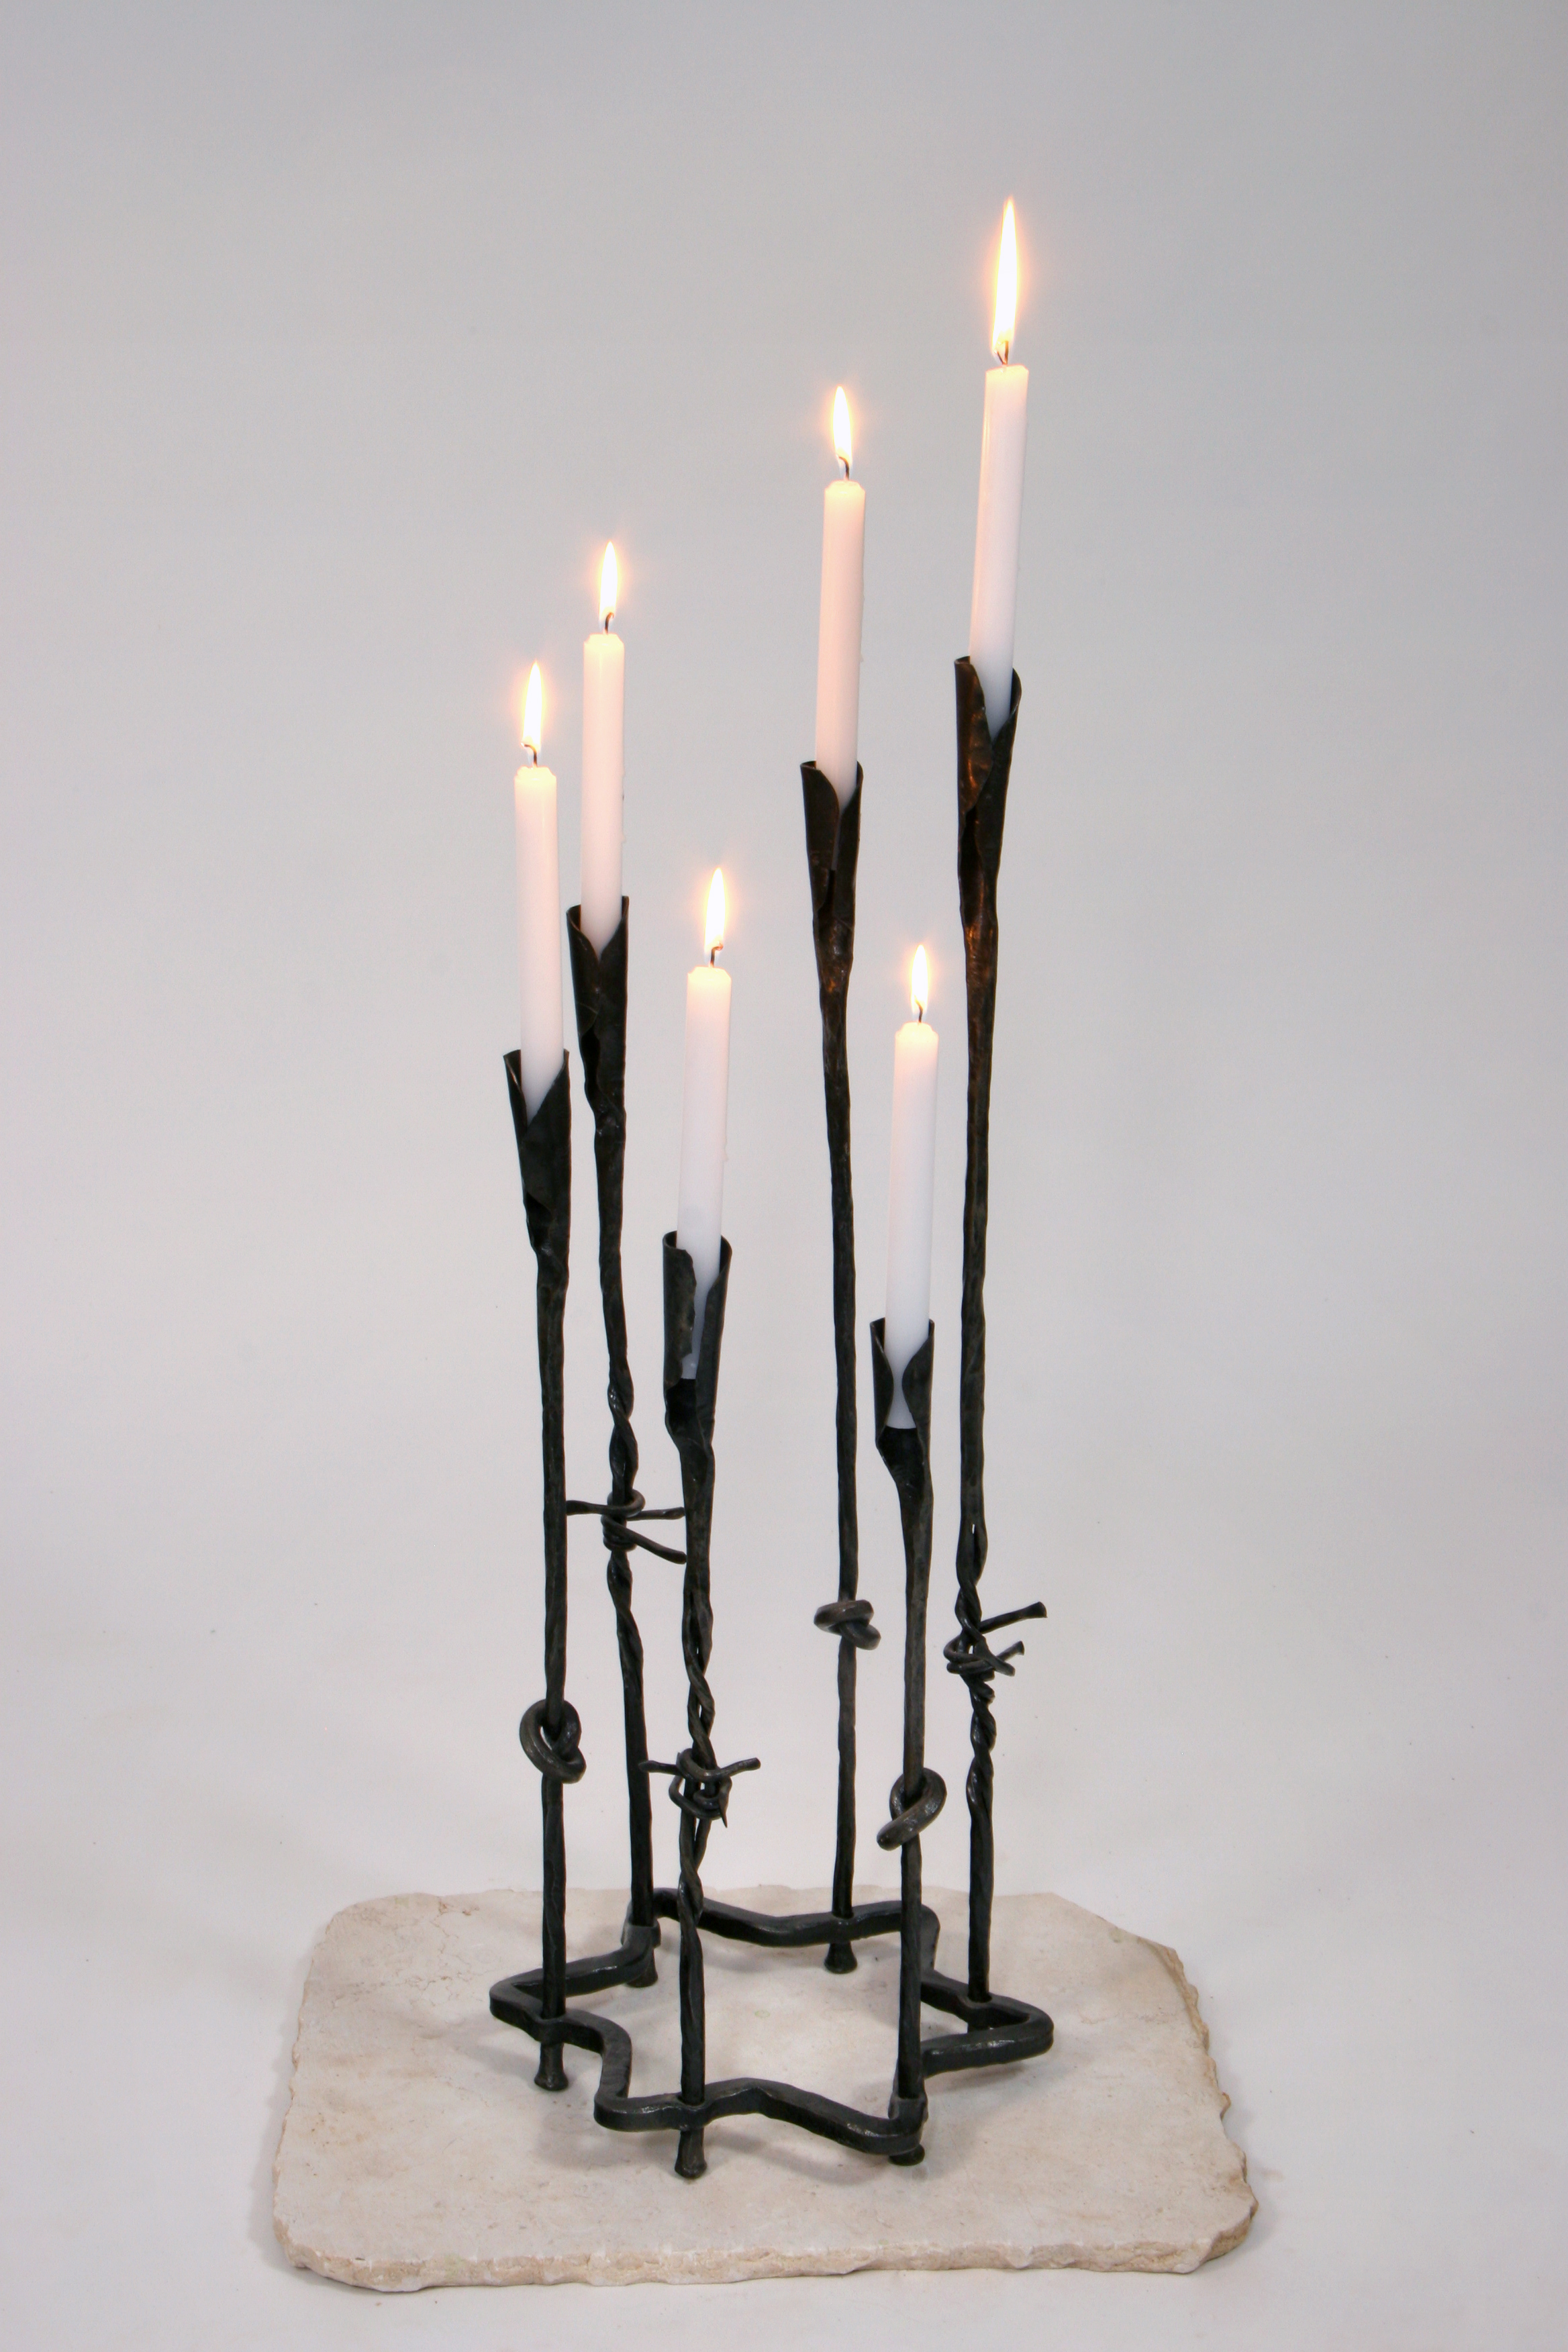 6 Million Small Unique Holocaust Memorial Candle Of Forged Iron